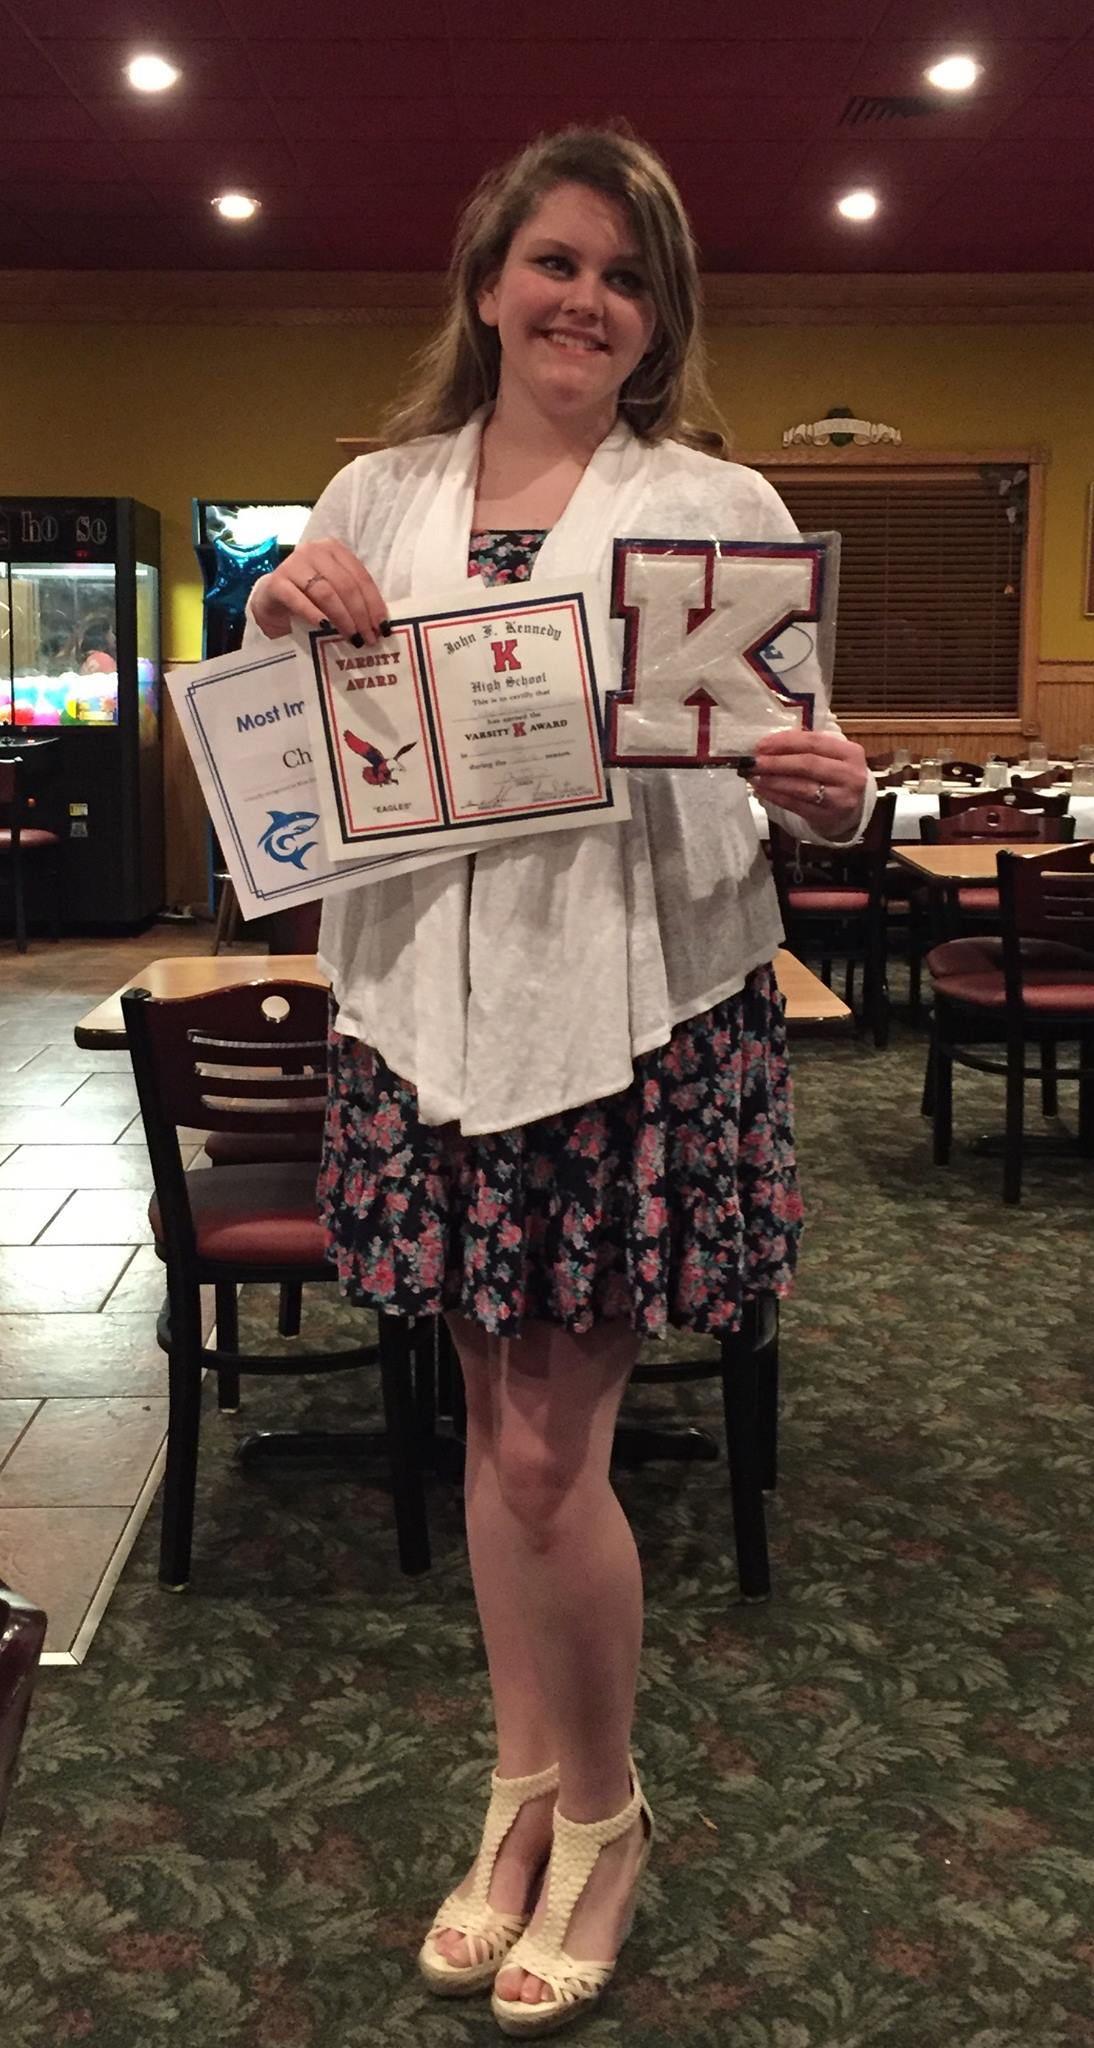 angela-read-osborne Pia\'s Ristorante Italiano Proud to get letter from Kennedy Highschool